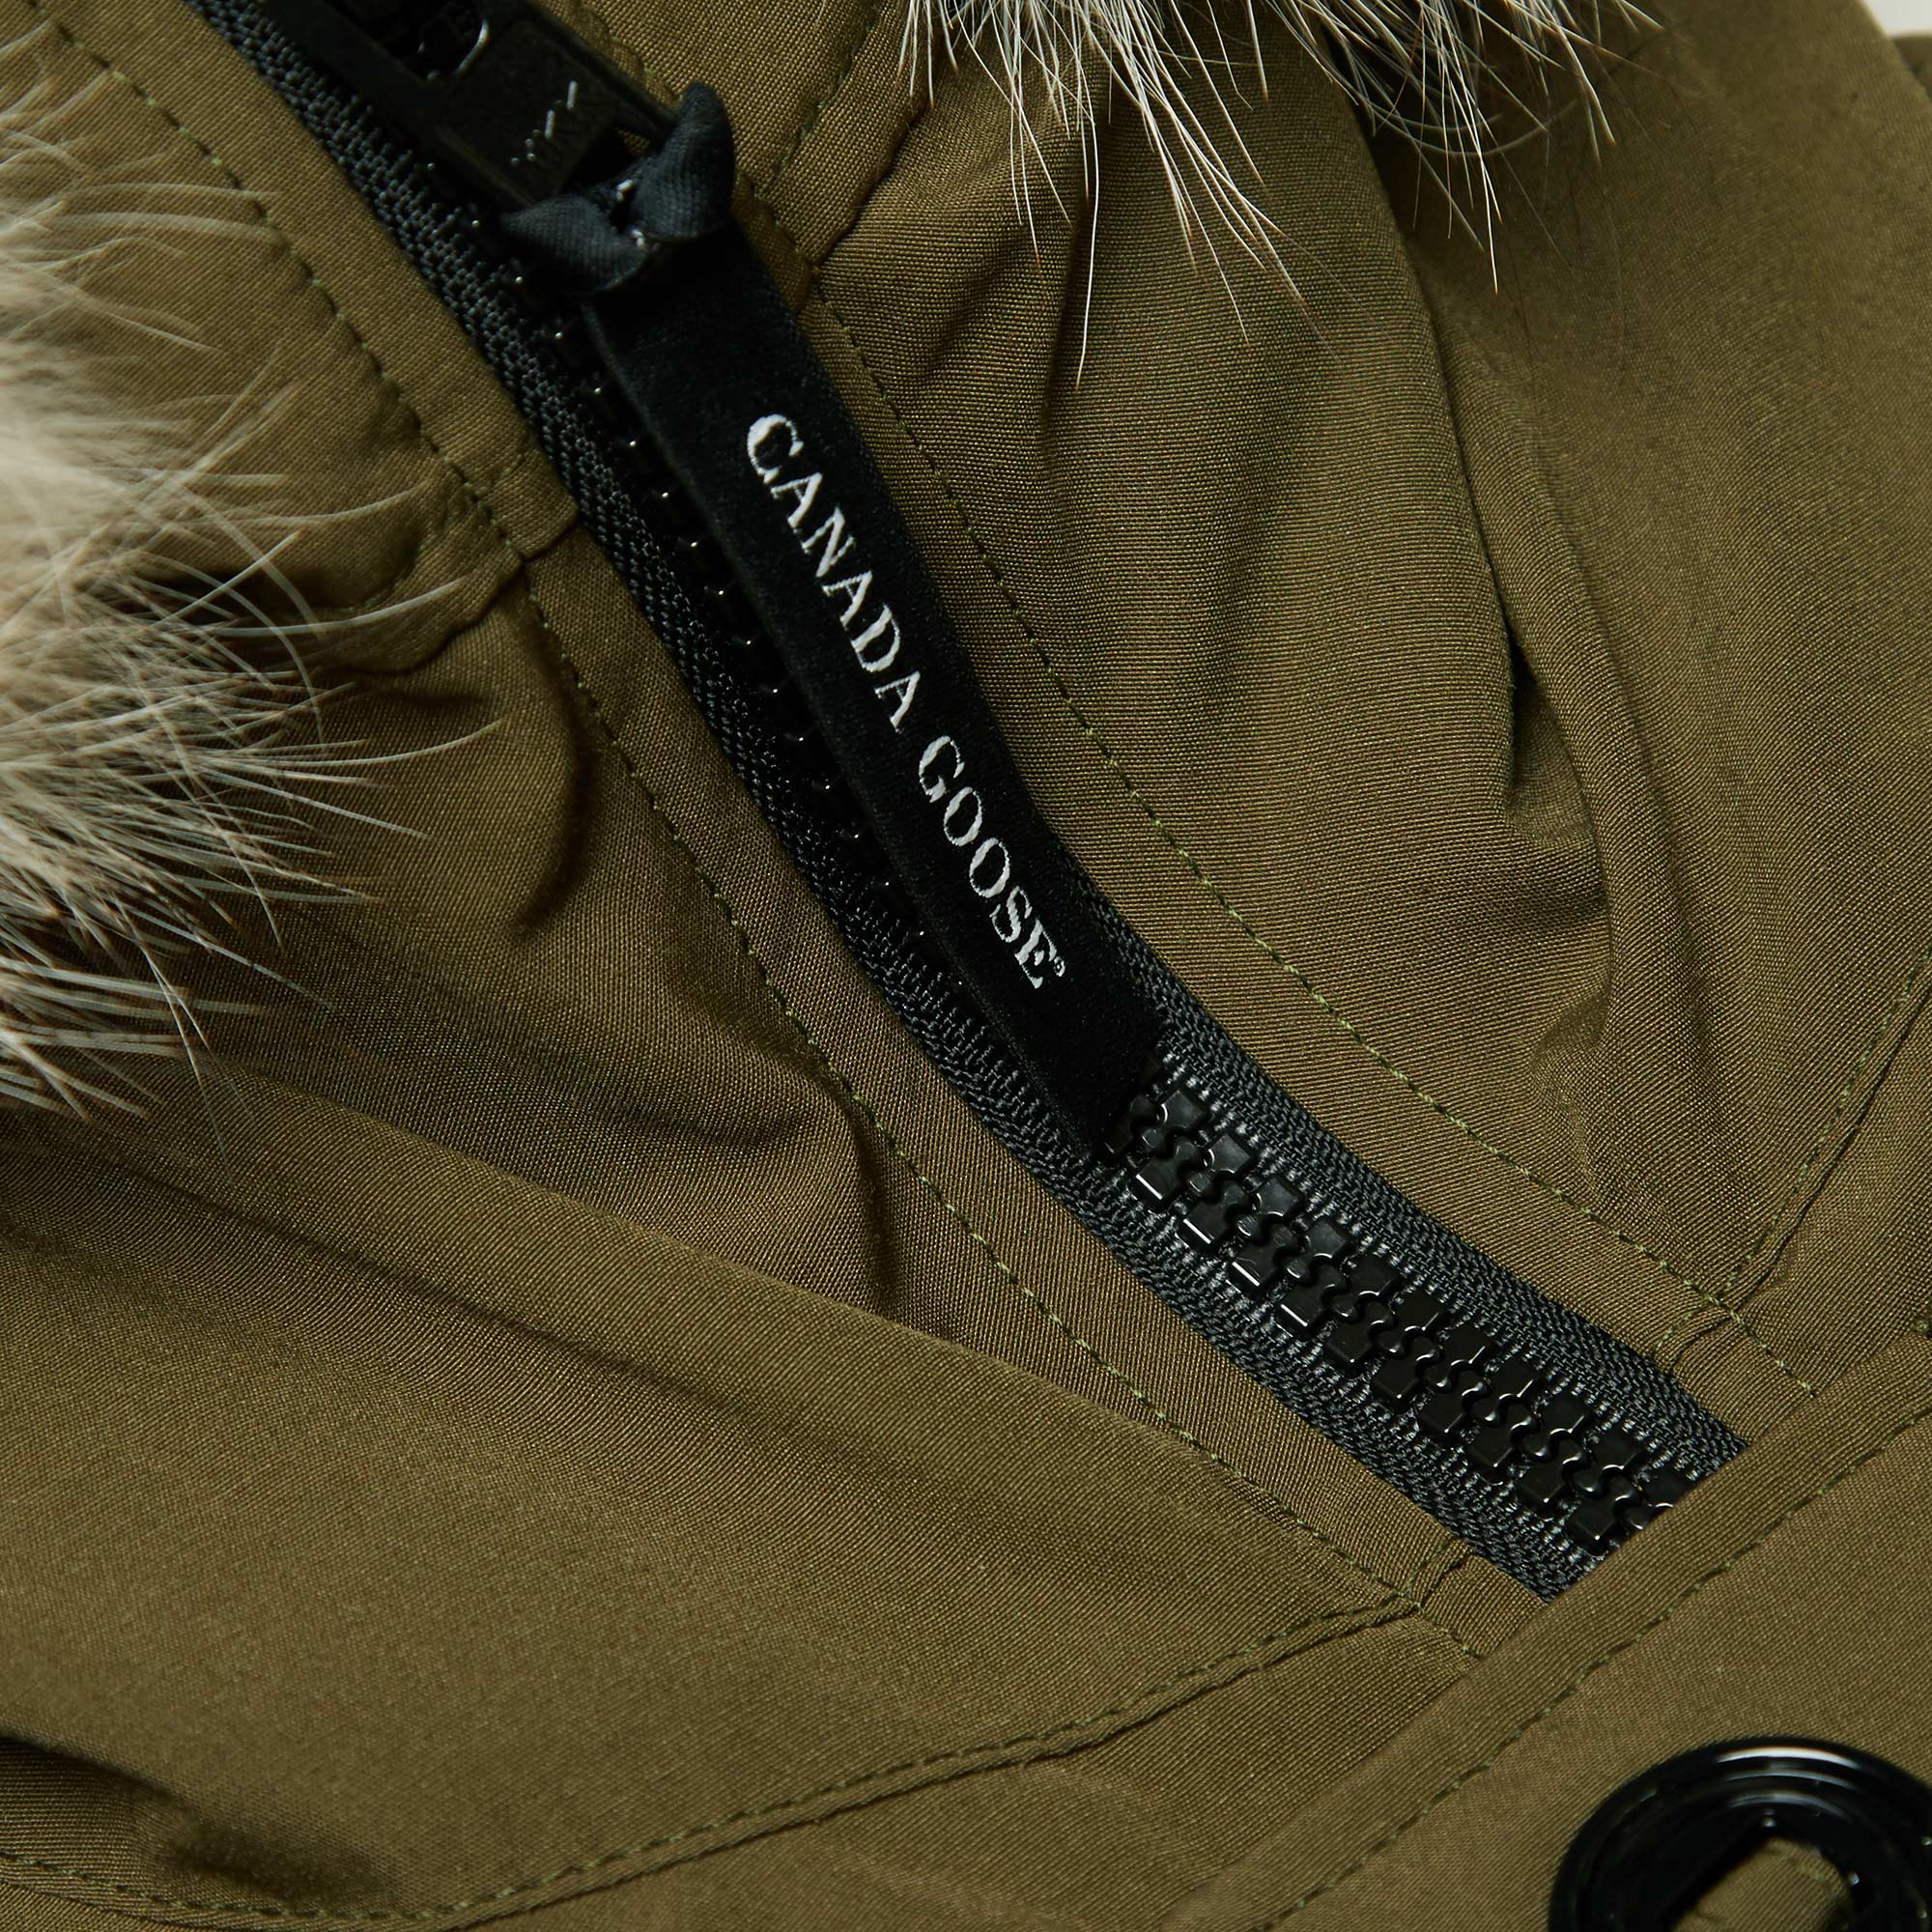 Canada Goose chilliwack parka outlet shop - Here You Can Find Canada Goose Outlet Mall Address Good In Craftwork